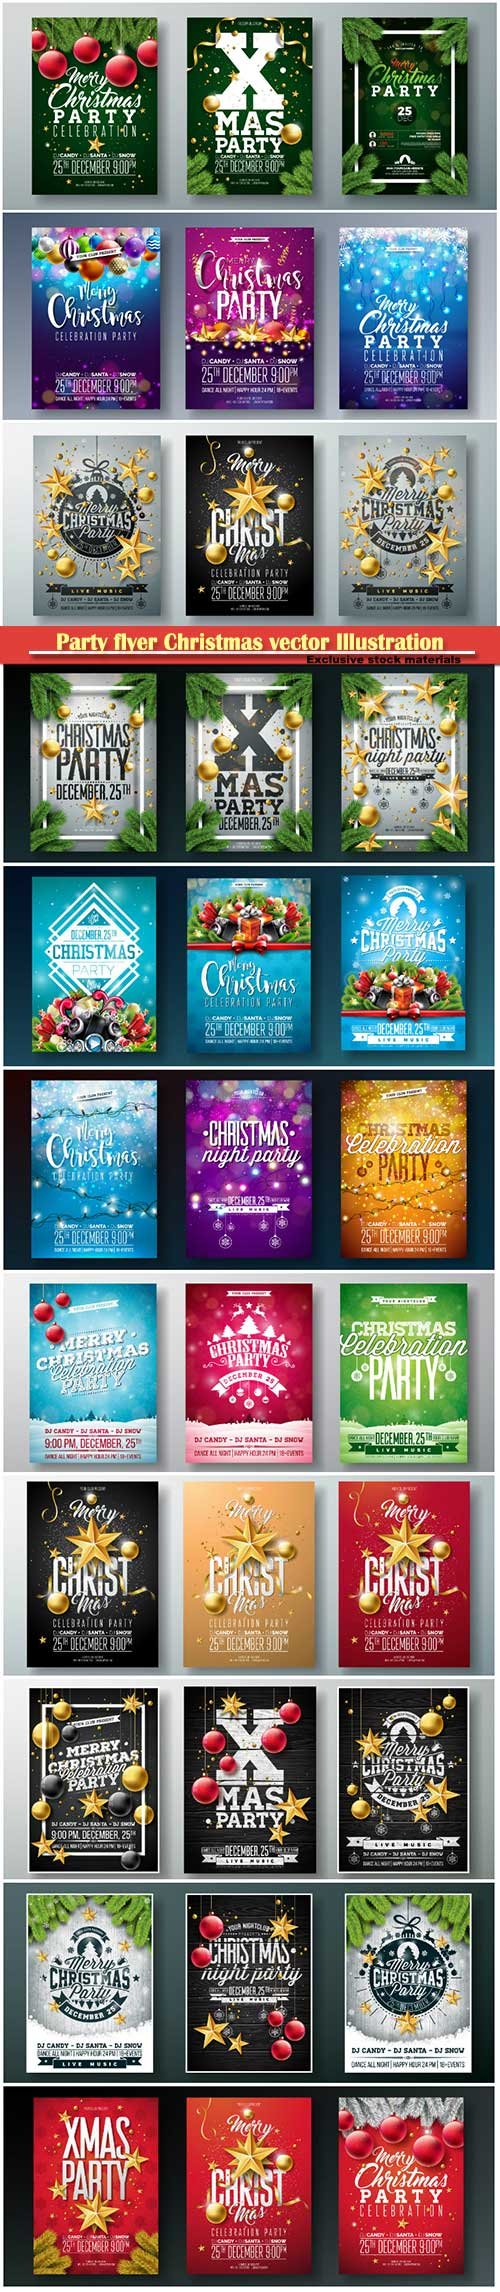 Party flyer Christmas vector Illustration with holiday elements